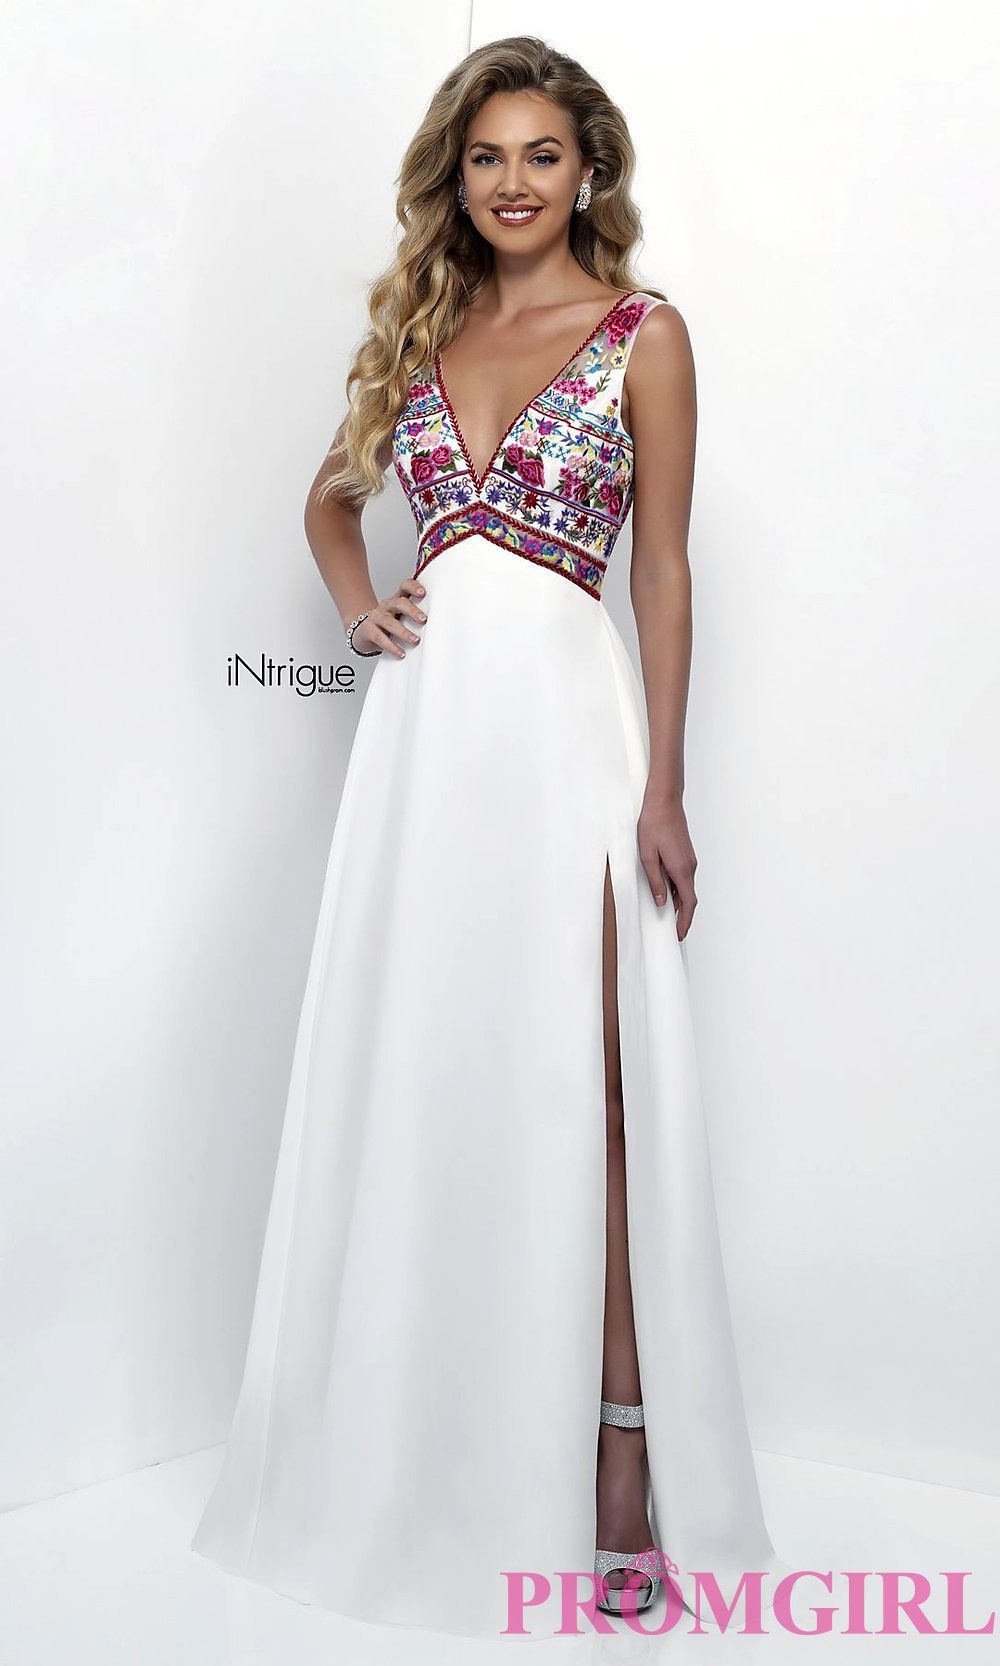 c5f5fcfb40a5 Long embroidered ivory v-neck empire waist prom dress with an open back  from Intrigue by Blush. Style  BL-IN-254